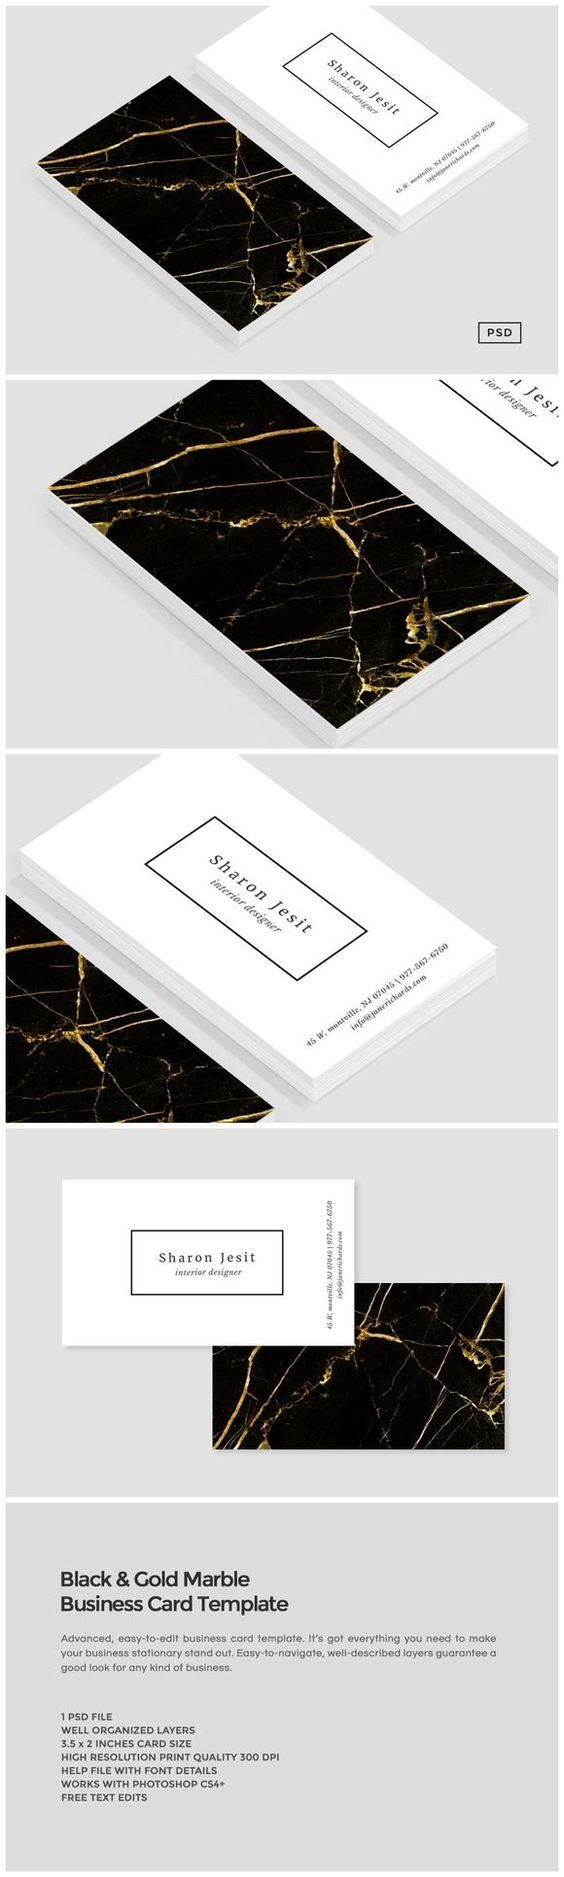 best free photo invitation software%0A Black  u     Gold Marble Business Card by Design Co  on Creative Market  Free  Business Card DesignBest